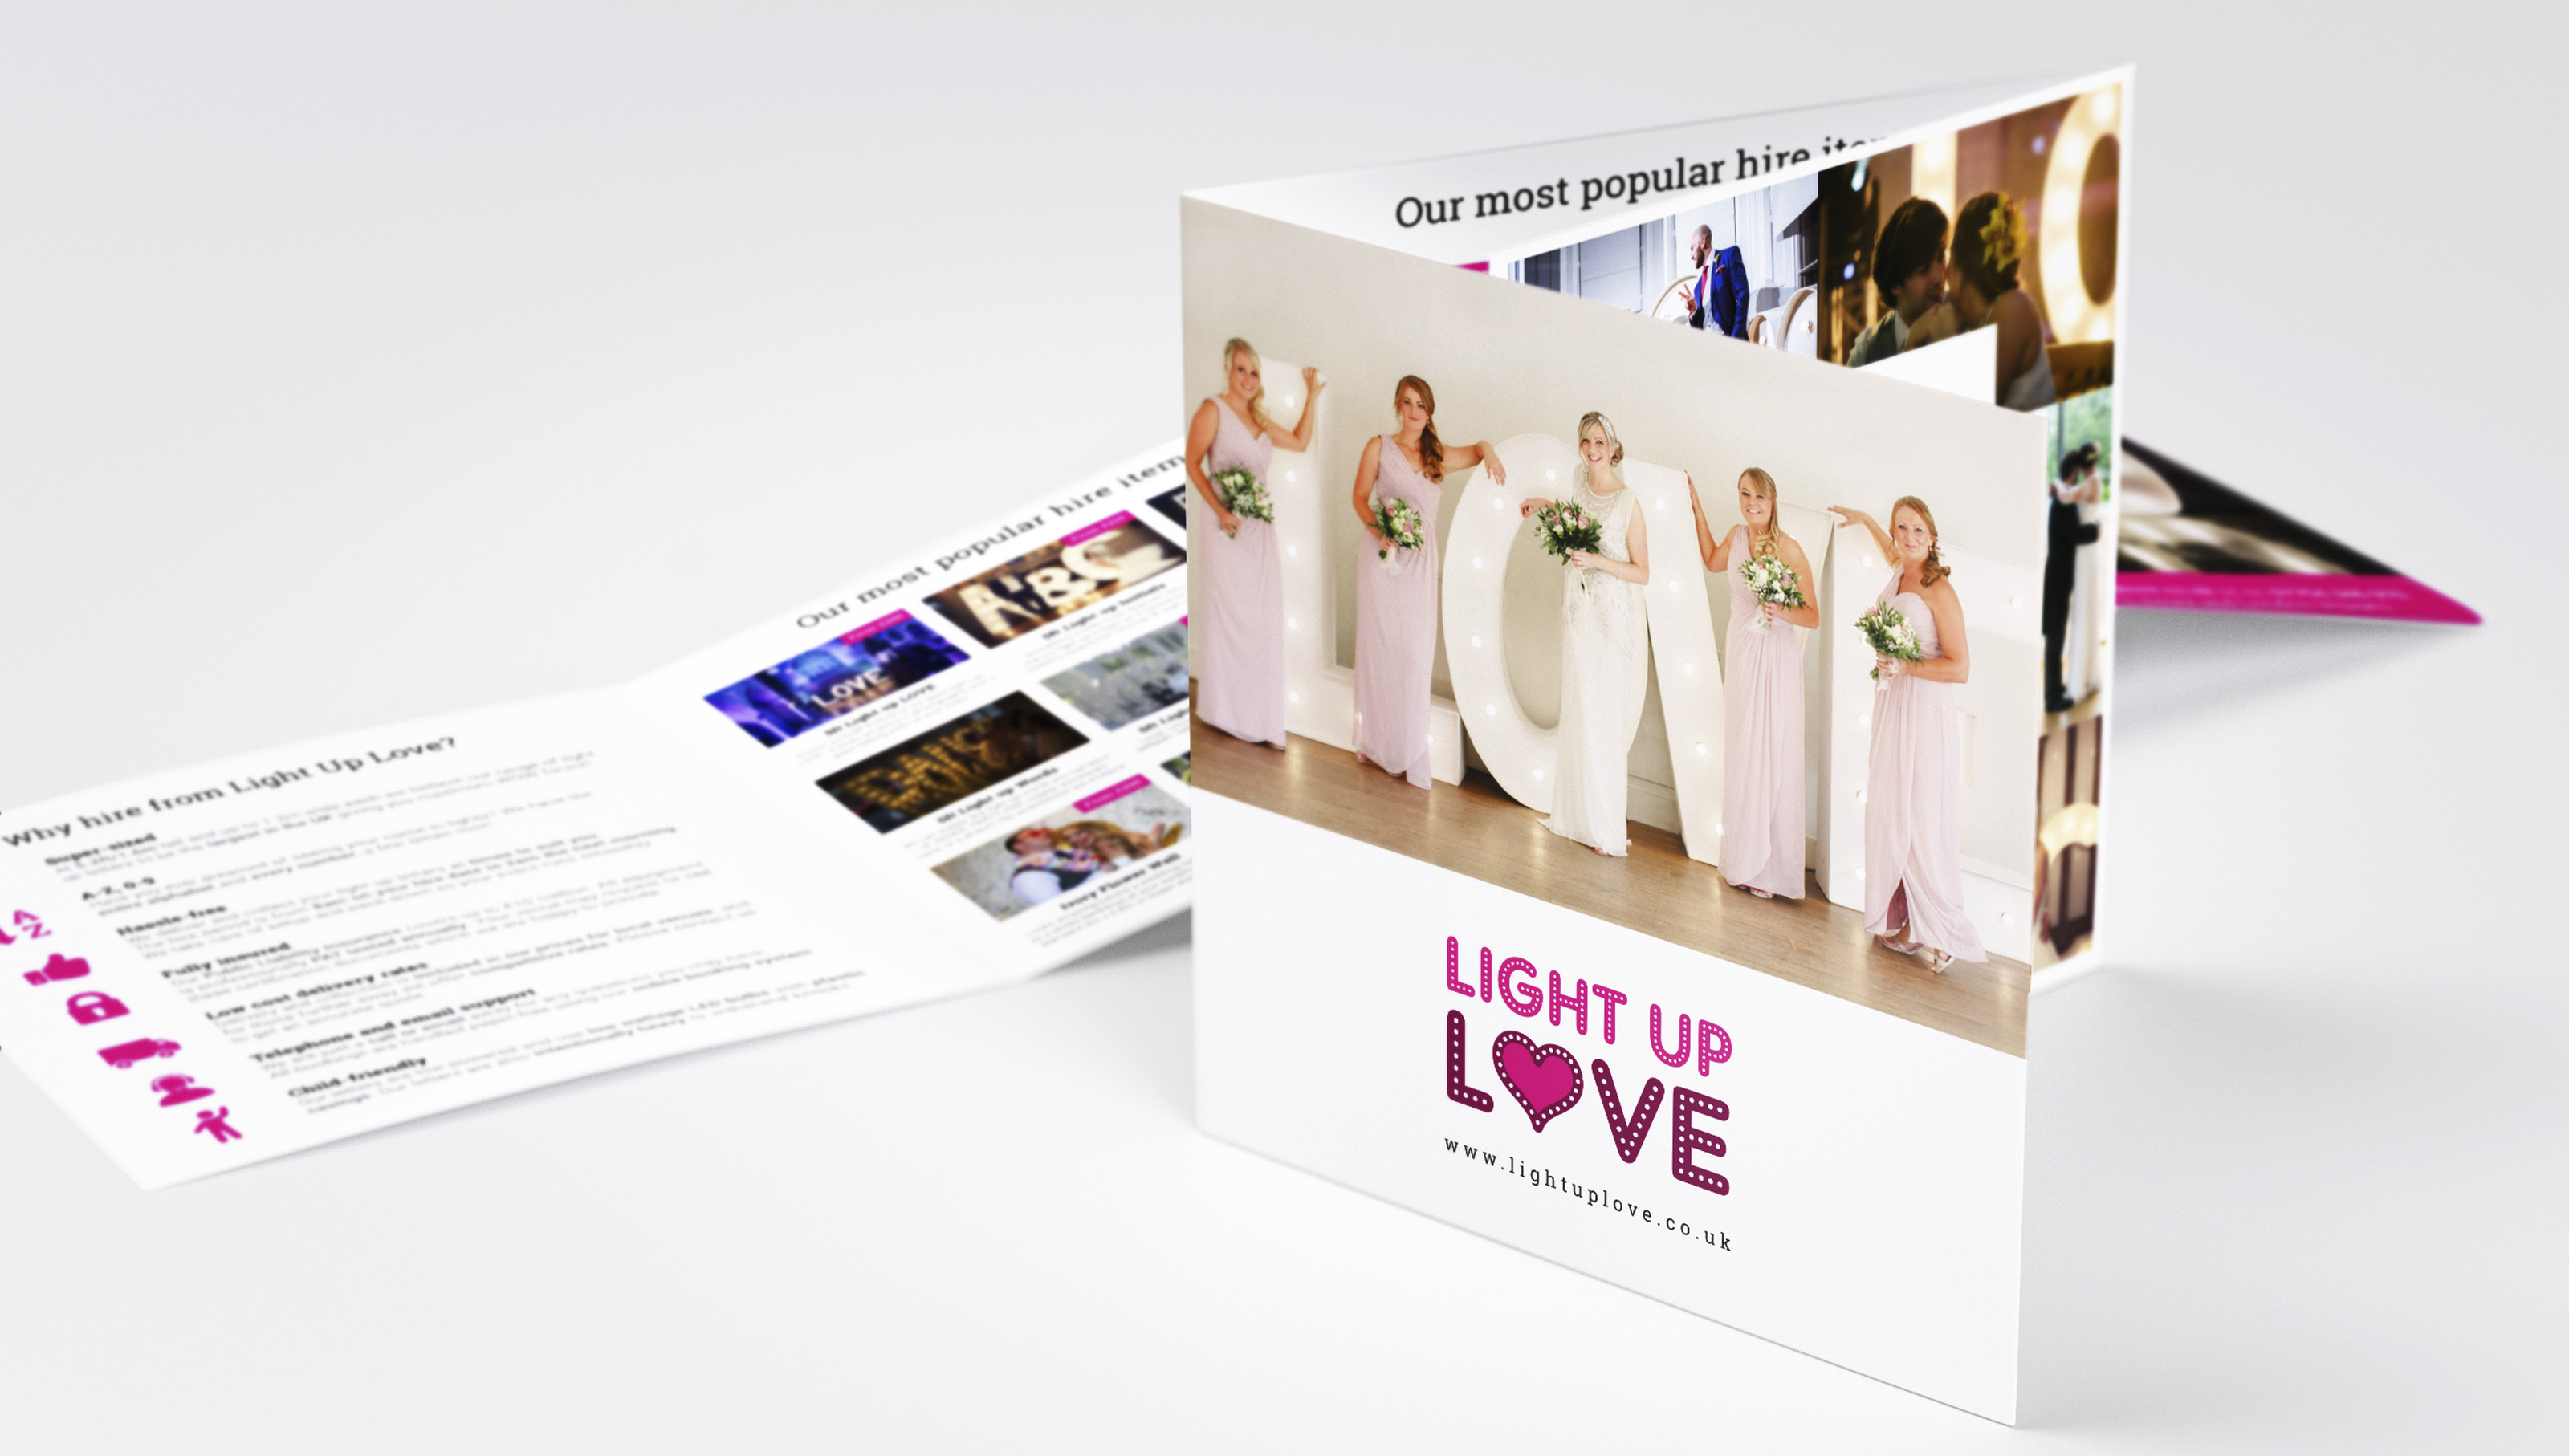 Light Up Love Marketing